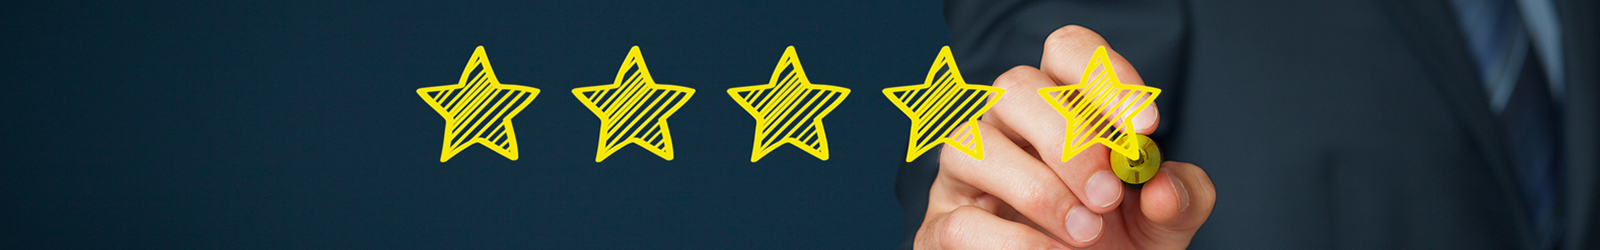 Increase rating evaluation and classification concept. Businessman draw five yellow star to increase rating of his company. Wide banner composition.